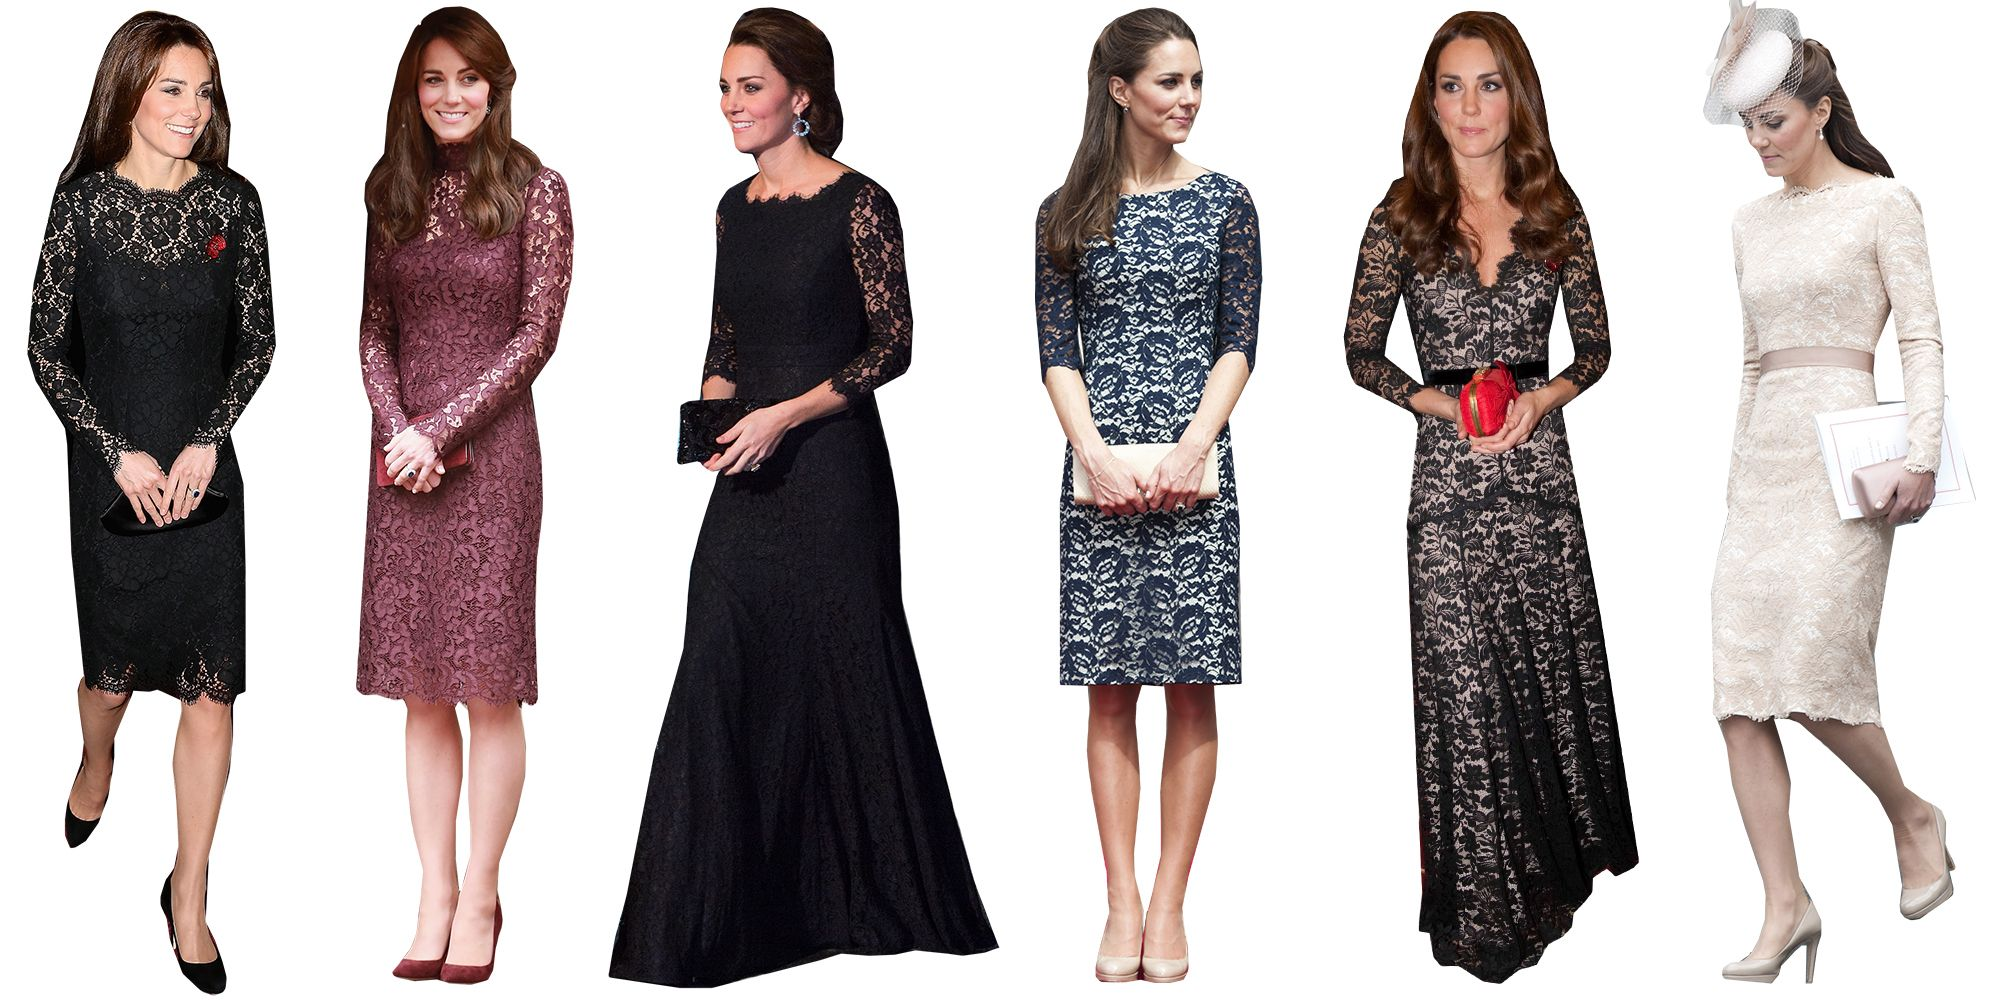 elle_katemiddleton_lacedress.jpg?crop=1x